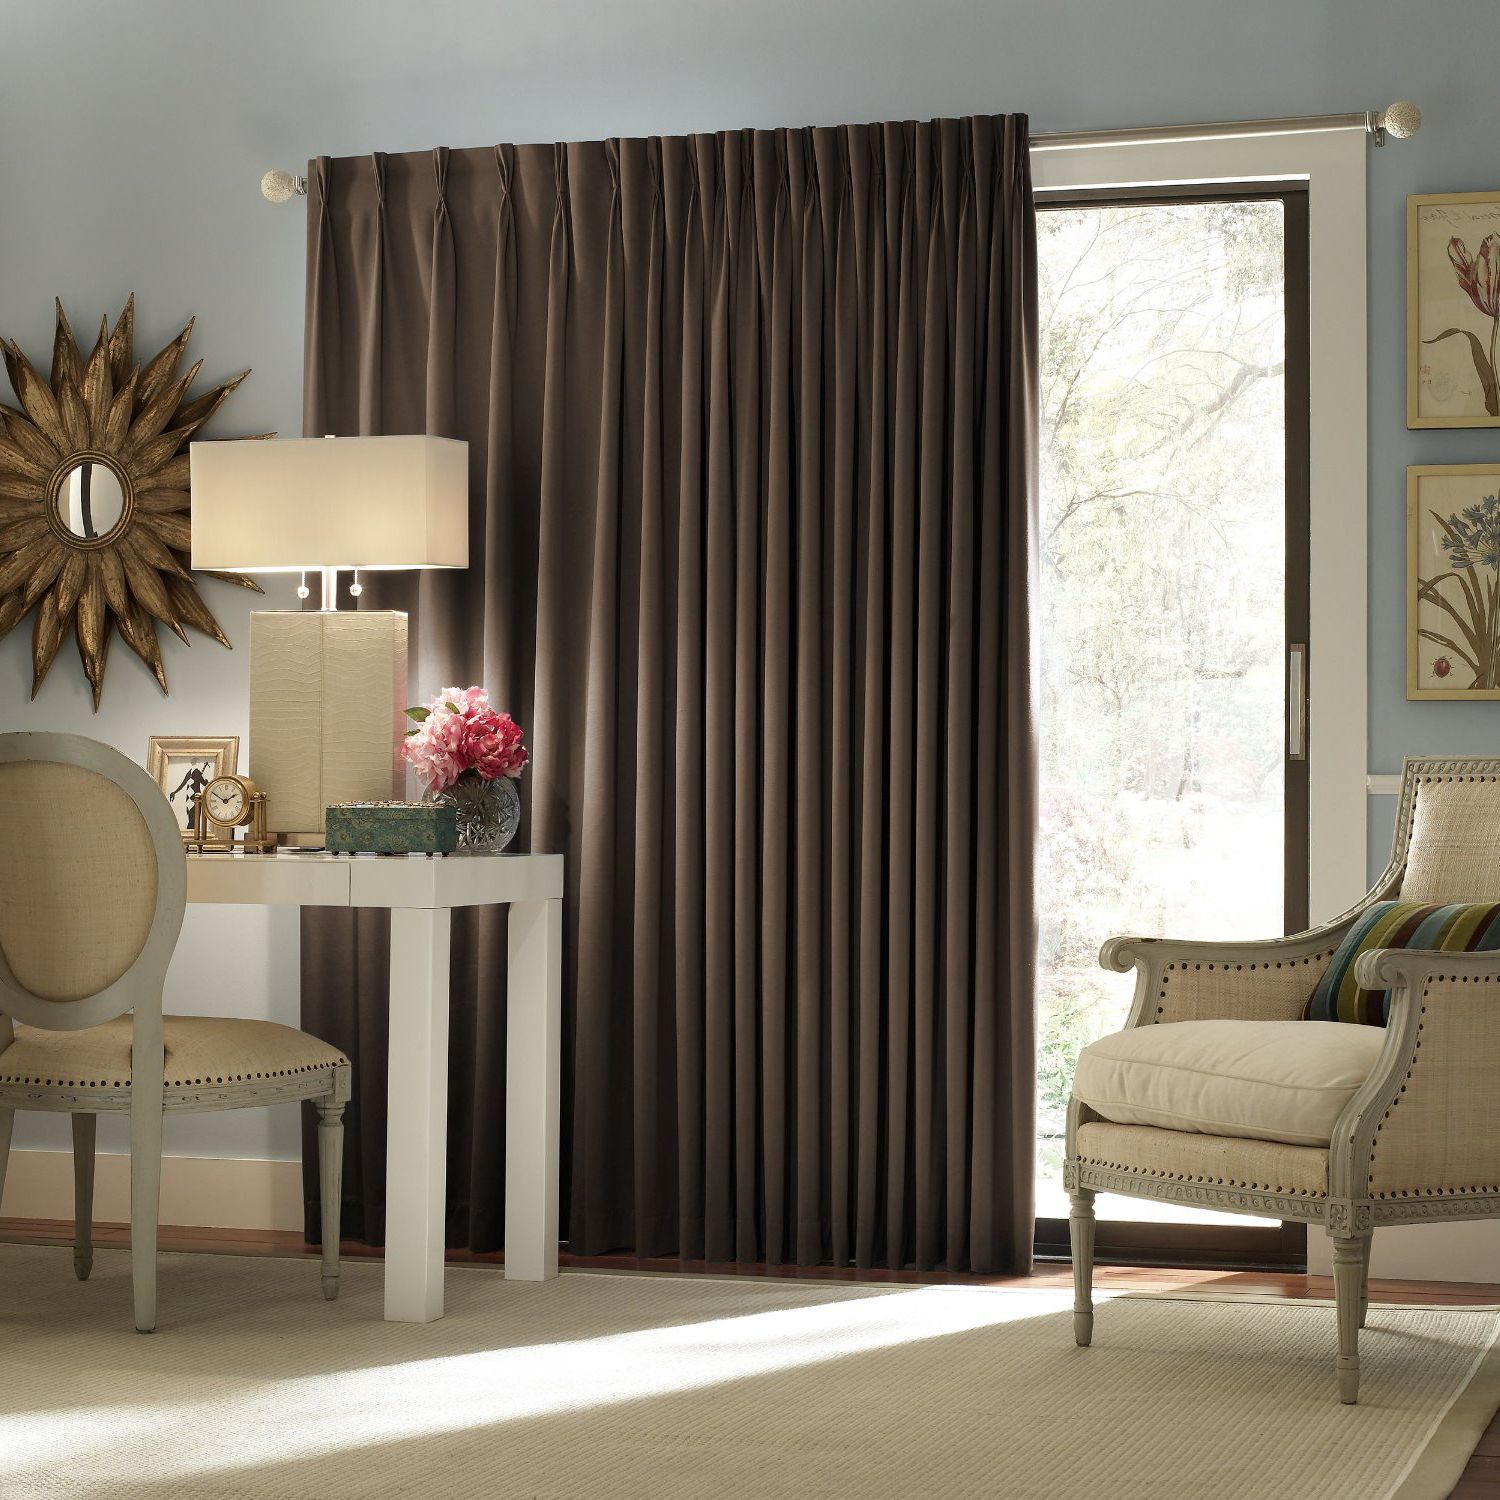 designer mode blinds awesome info door image of curtains sliding modern curtain